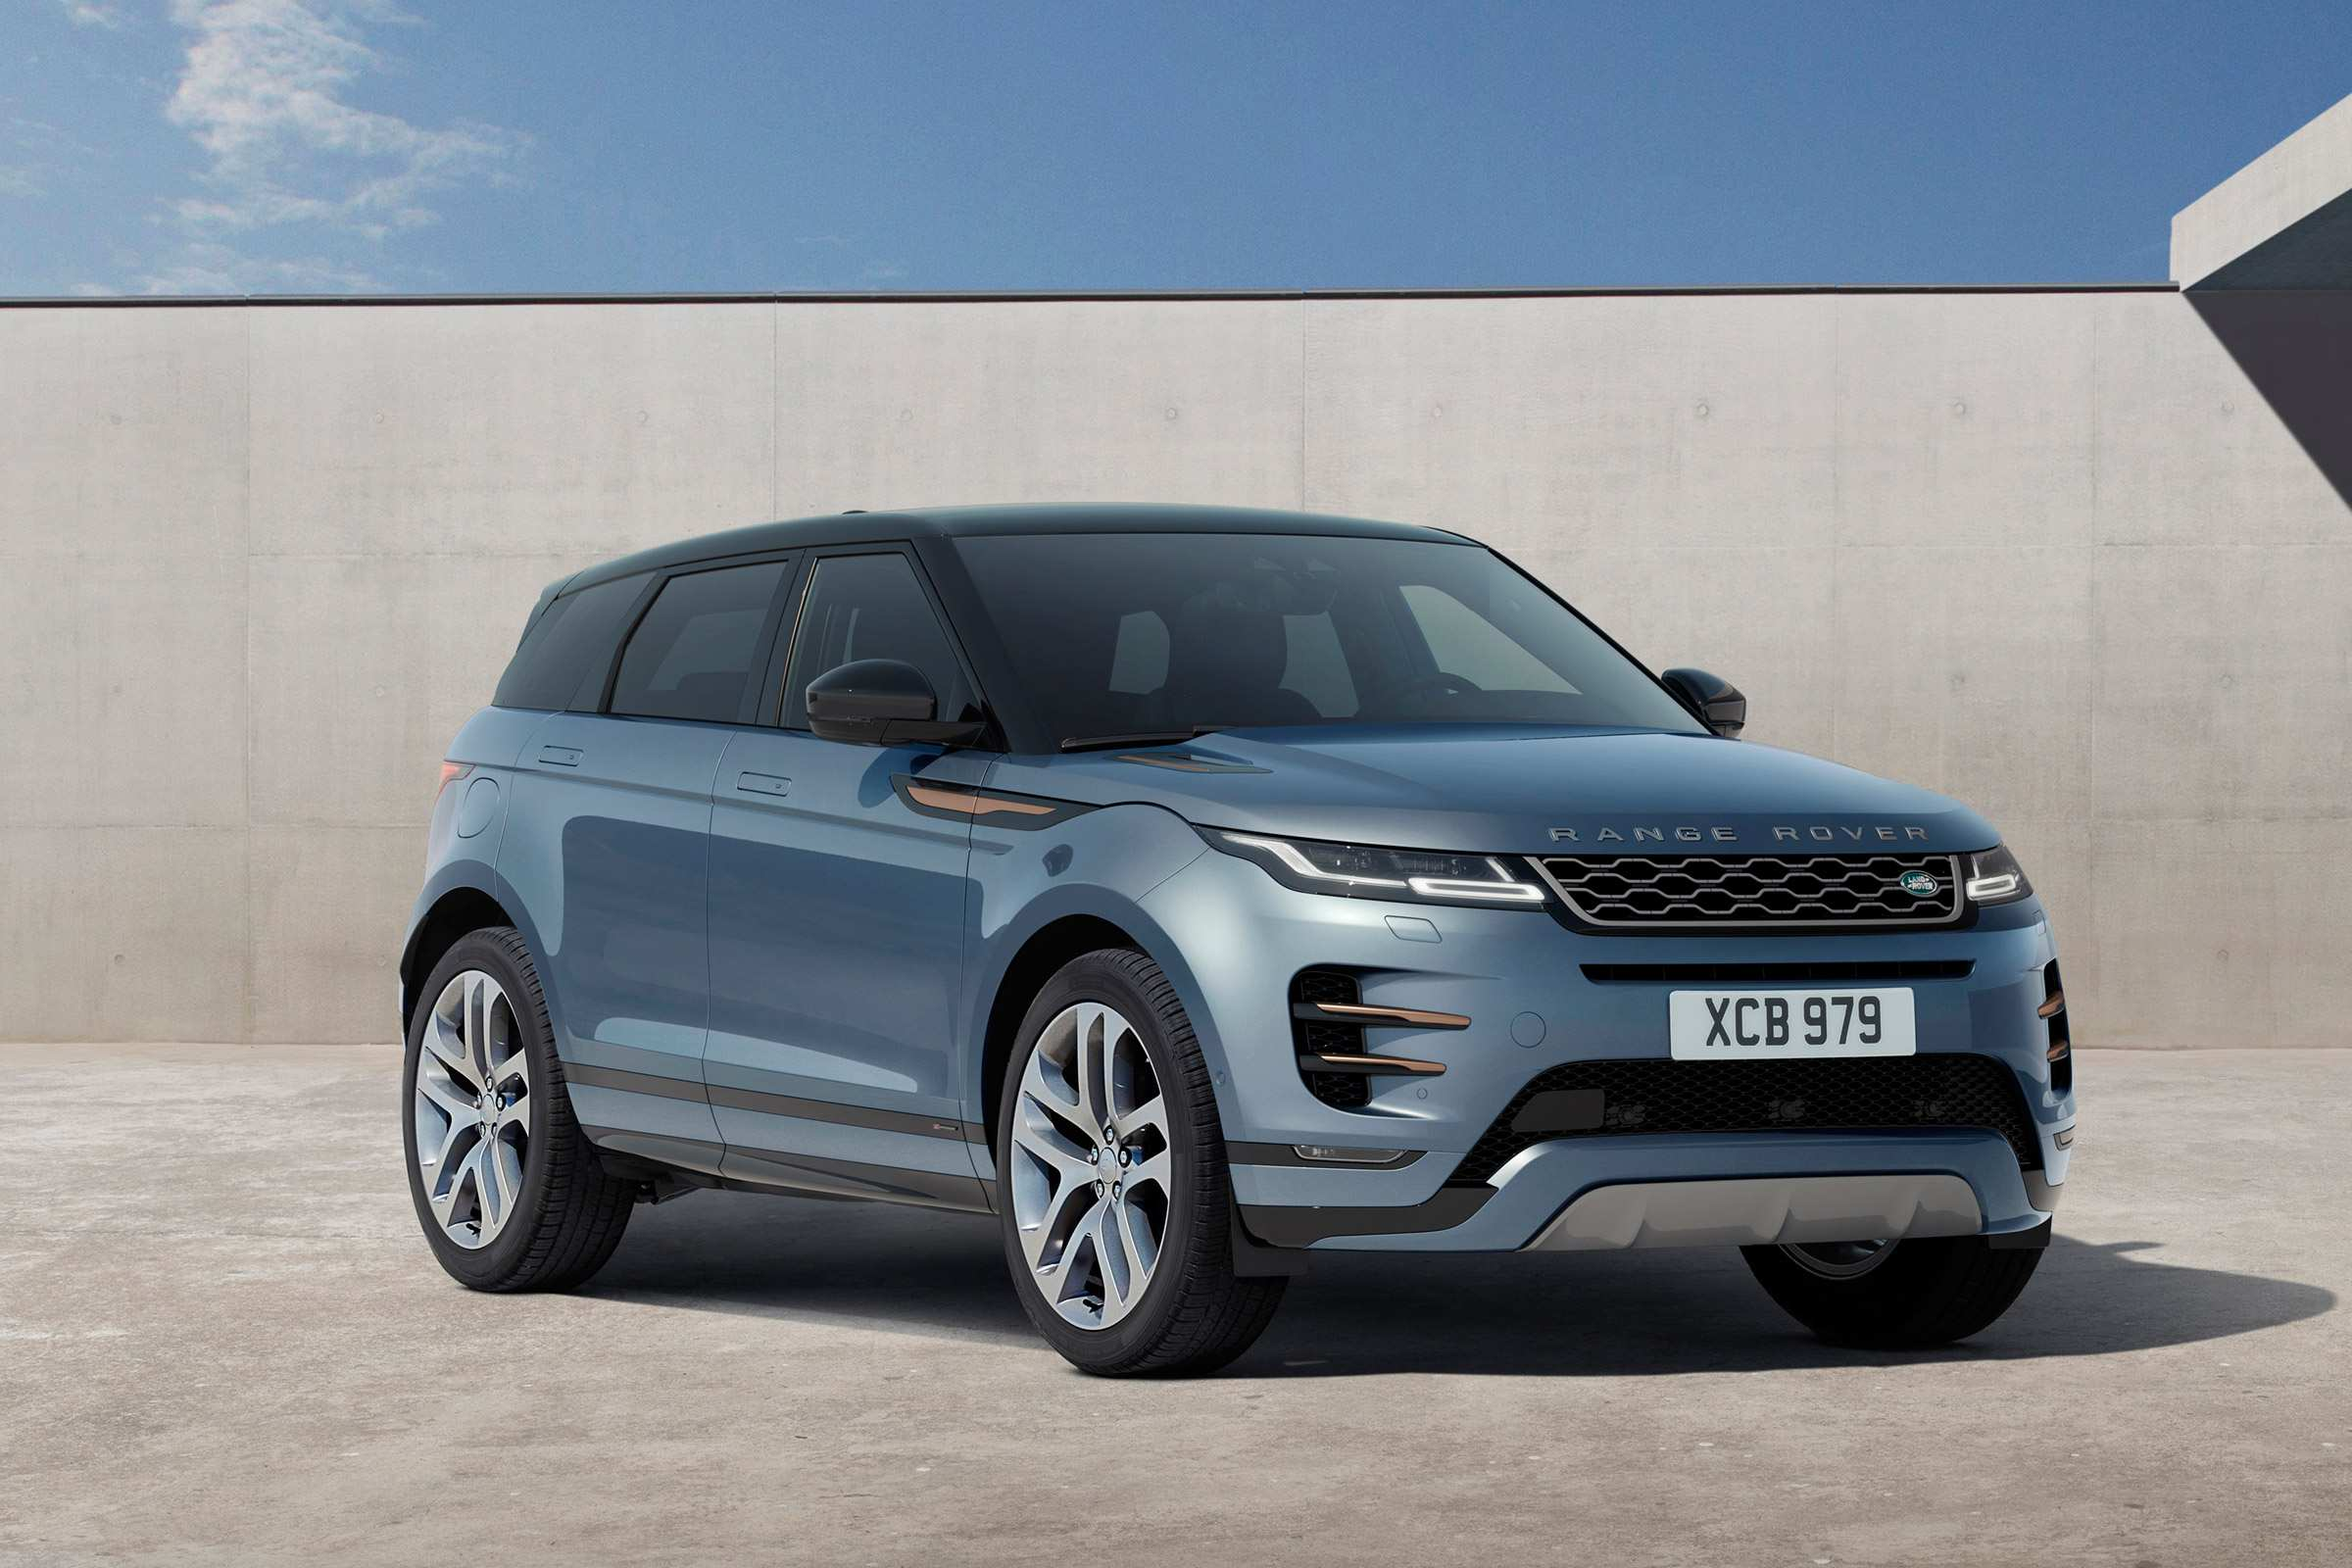 70 The 2019 Range Rover Evoque Xl Release